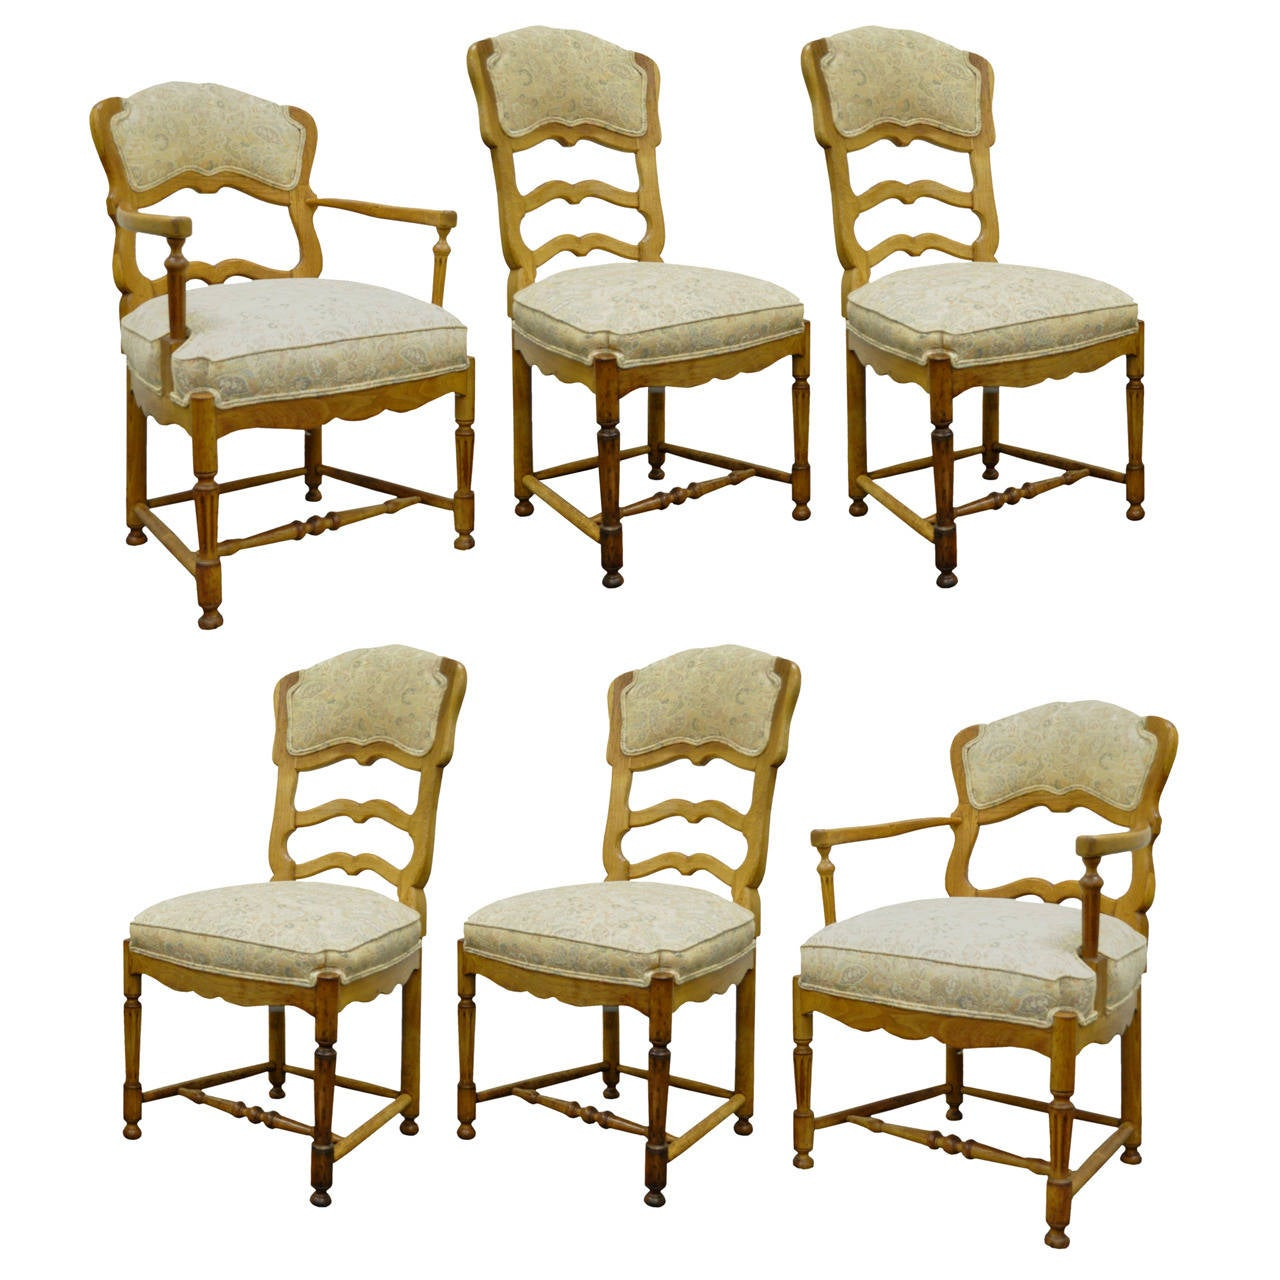 Six French Country Style Carved And Upholstered Ladder Back Dining Chairs 1